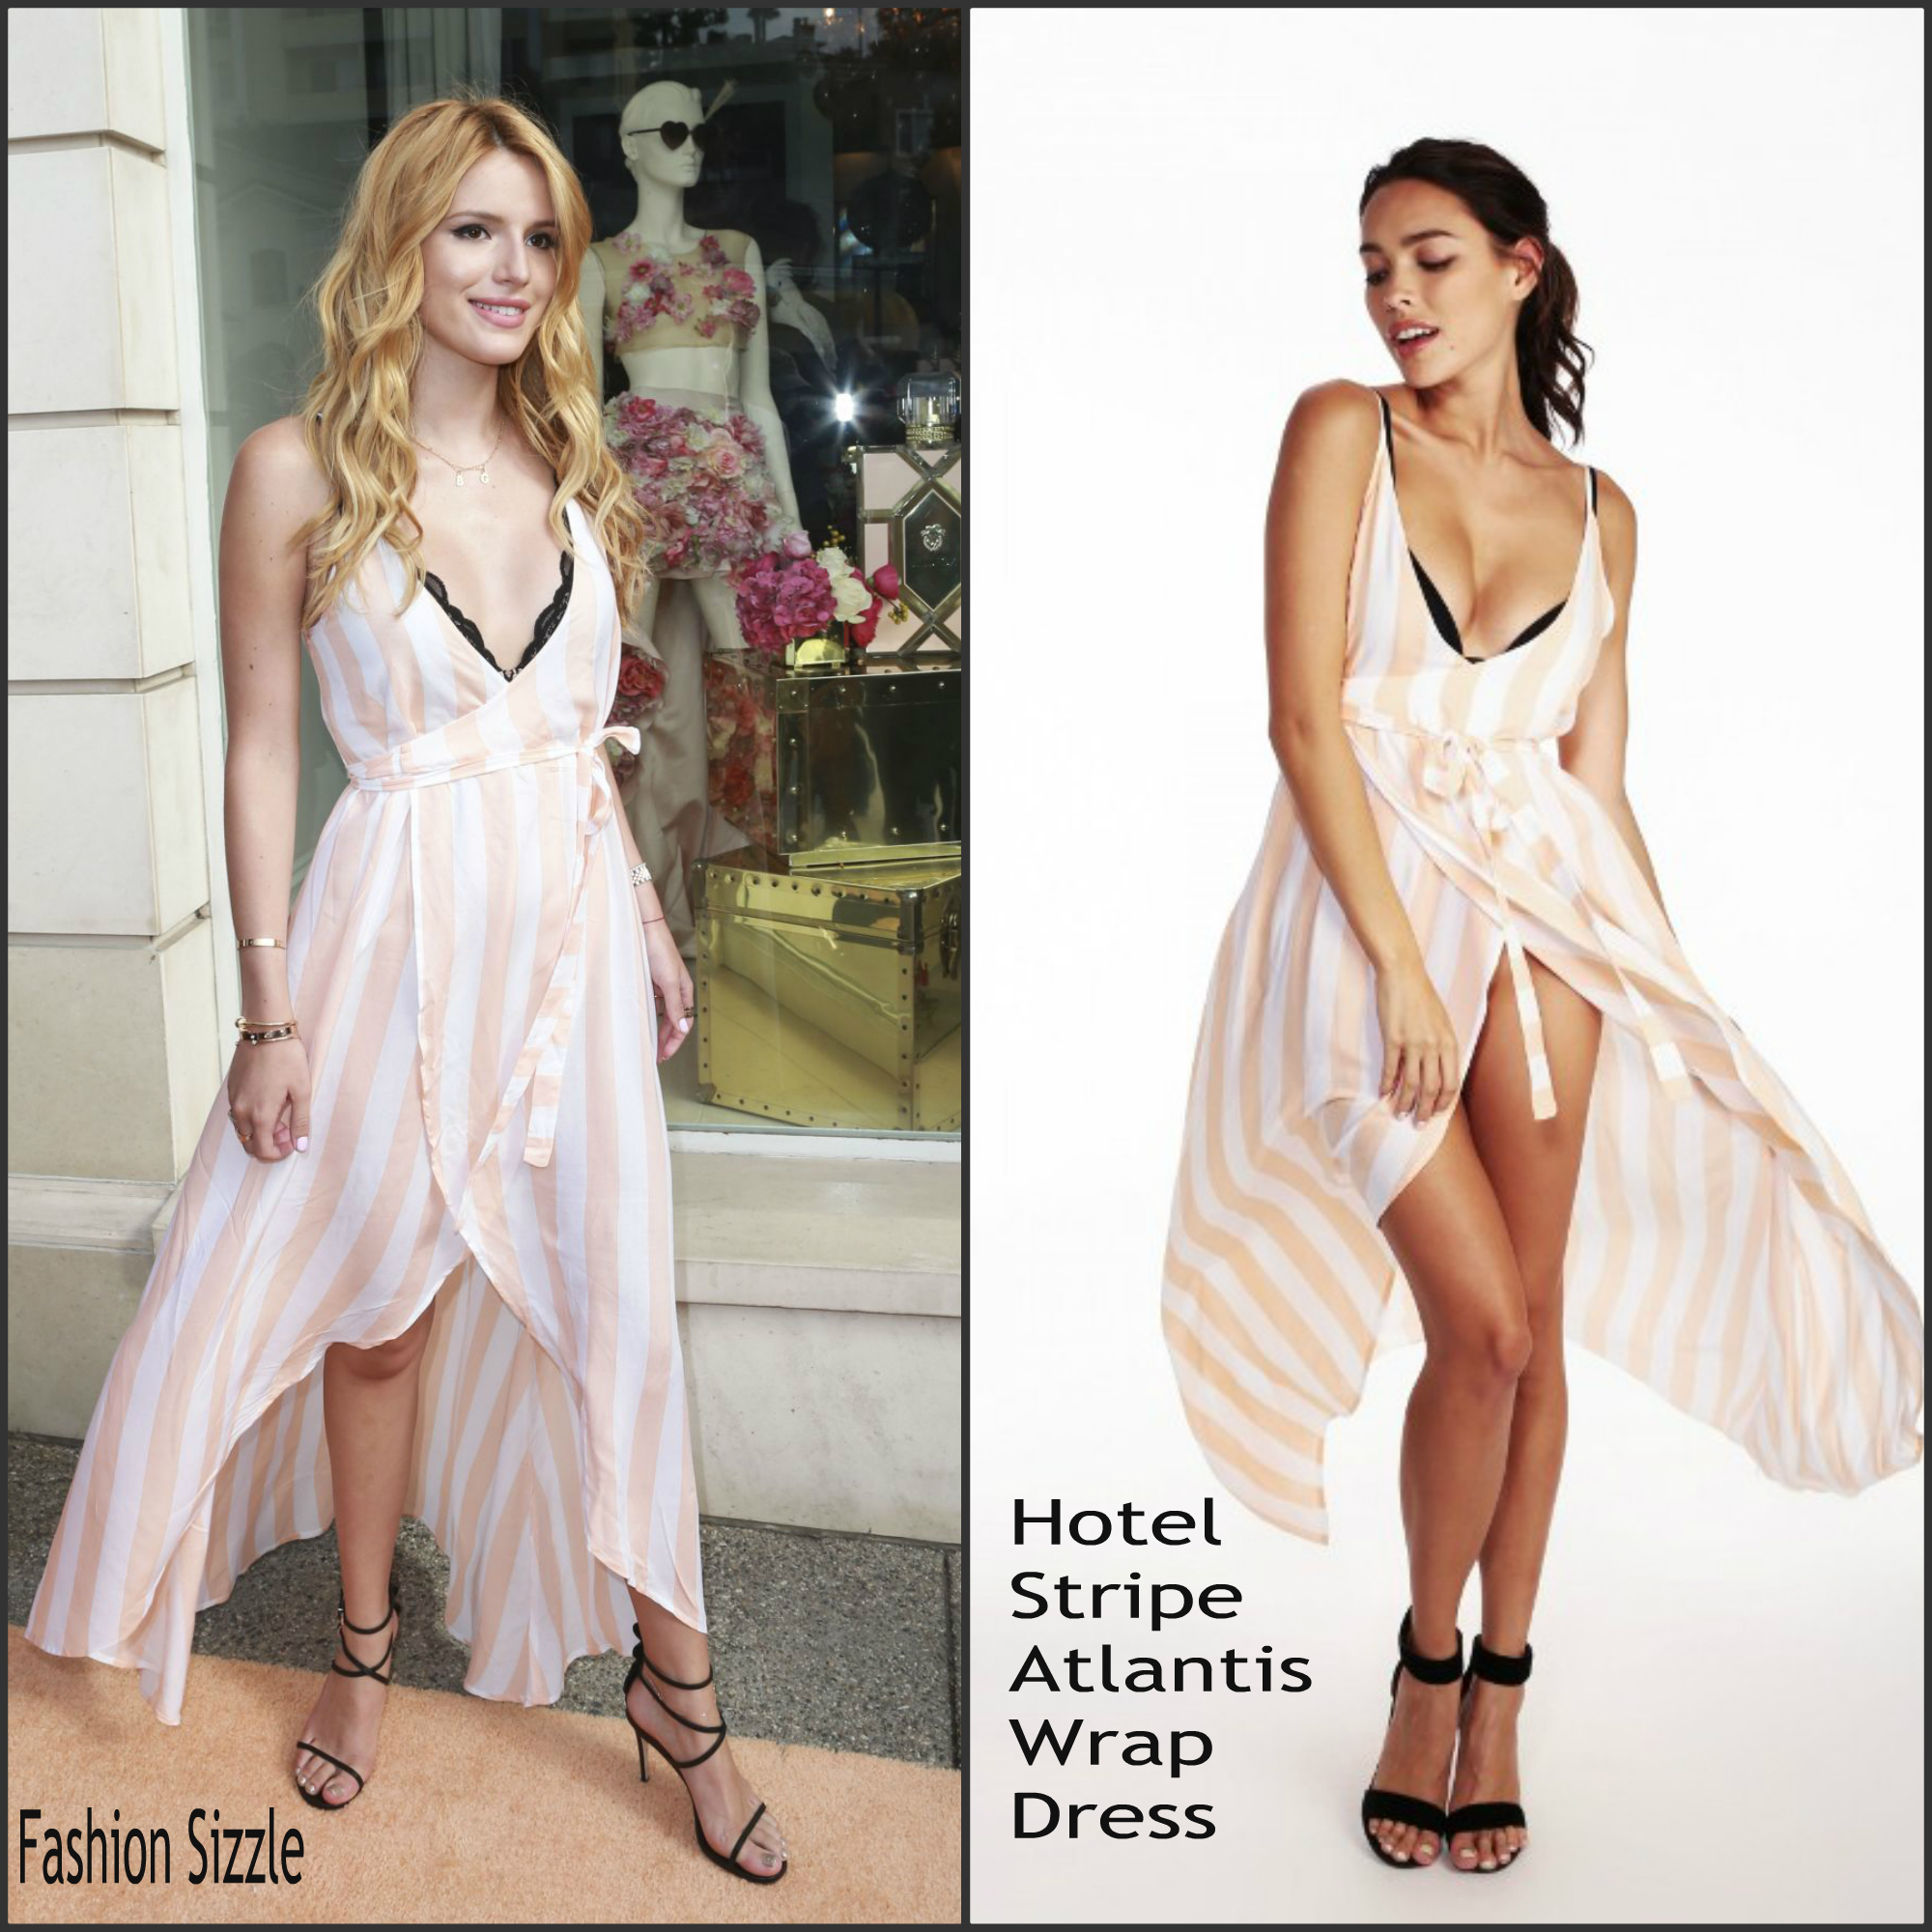 bella-thorne-wildfox-fagrance-launch-event-hollywood